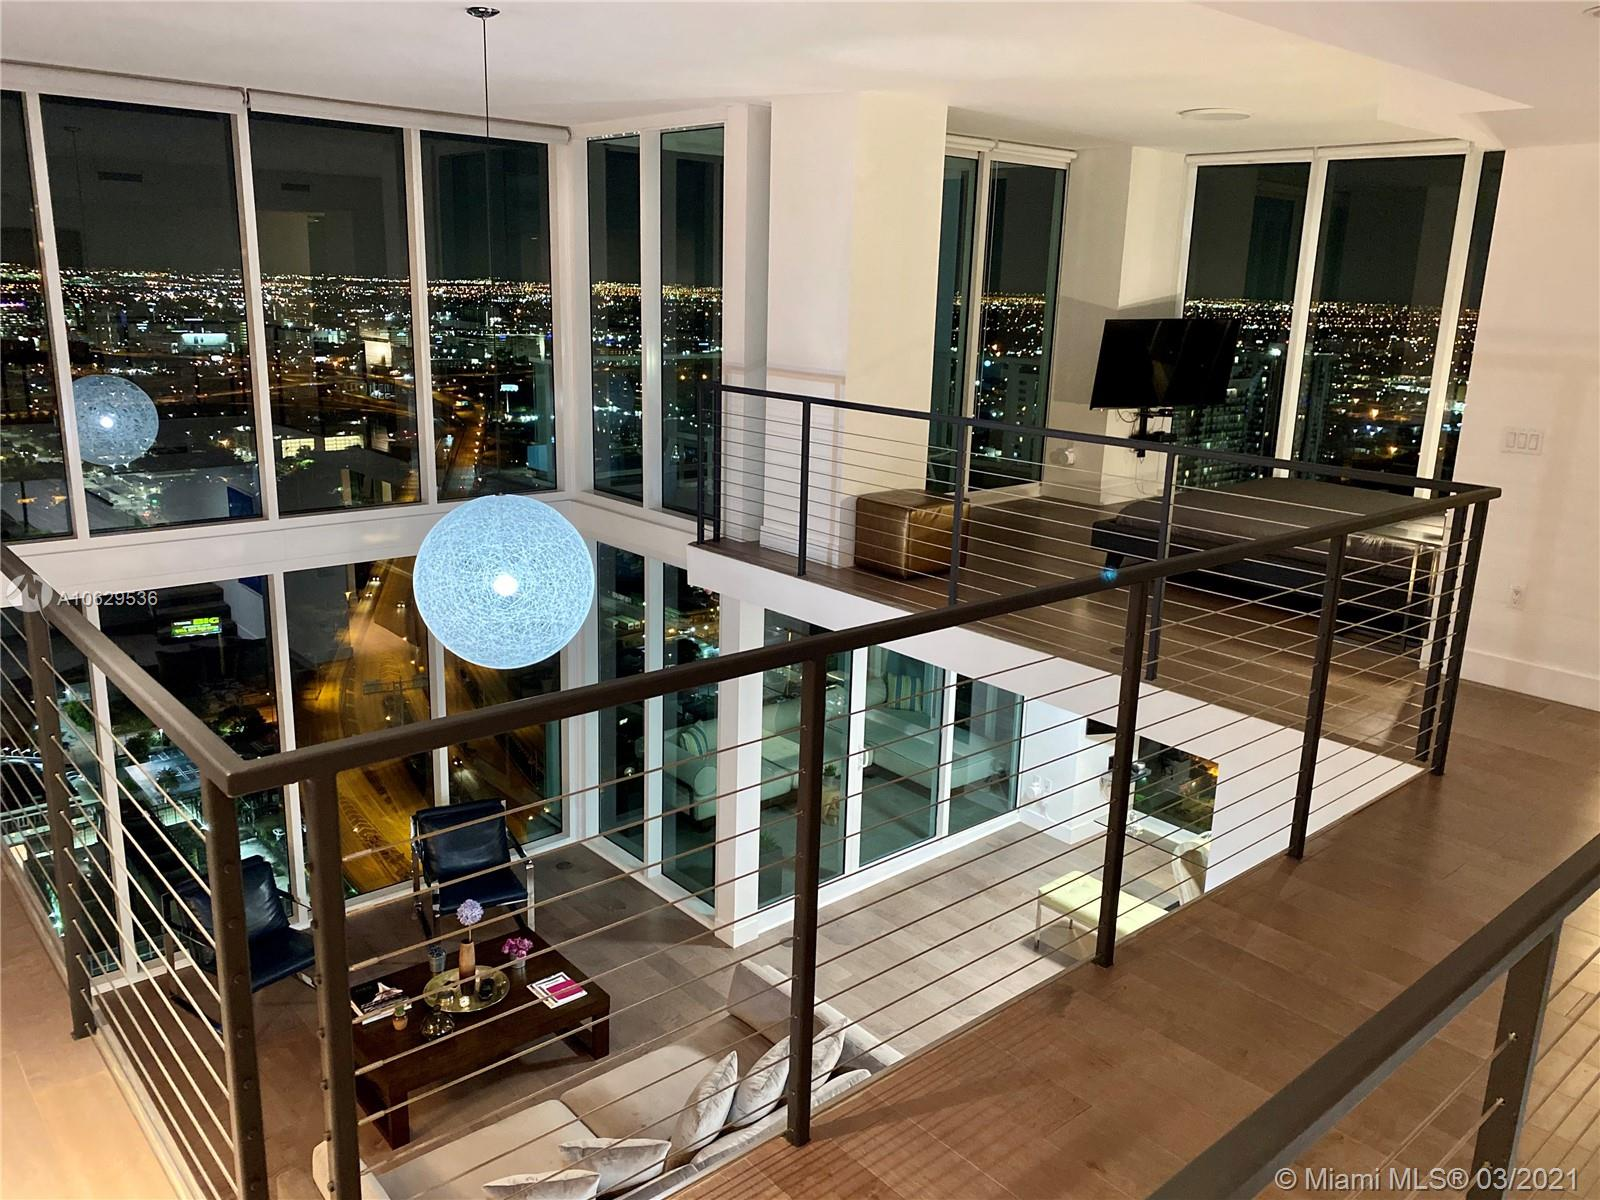 Magnificent 3-story ultra-modern penthouse has two balconies, a PRIVATE POOL with deck and breath-taking city views. Features 2 bedrooms, 2.5 baths, open kitchen, 10ft-20ft ceilings, walk-in closet. Completely redone and furnished, everything is new, including 120-inch projector with screen and foosball table. 2 valet parking spaces. Full service luxury building completed in 2007. Building amenities include gym, spa, sauna and pools. You can walk to Bayfront Park, American Arena, downtown. Truly one of the best penthouses in all of Miami.